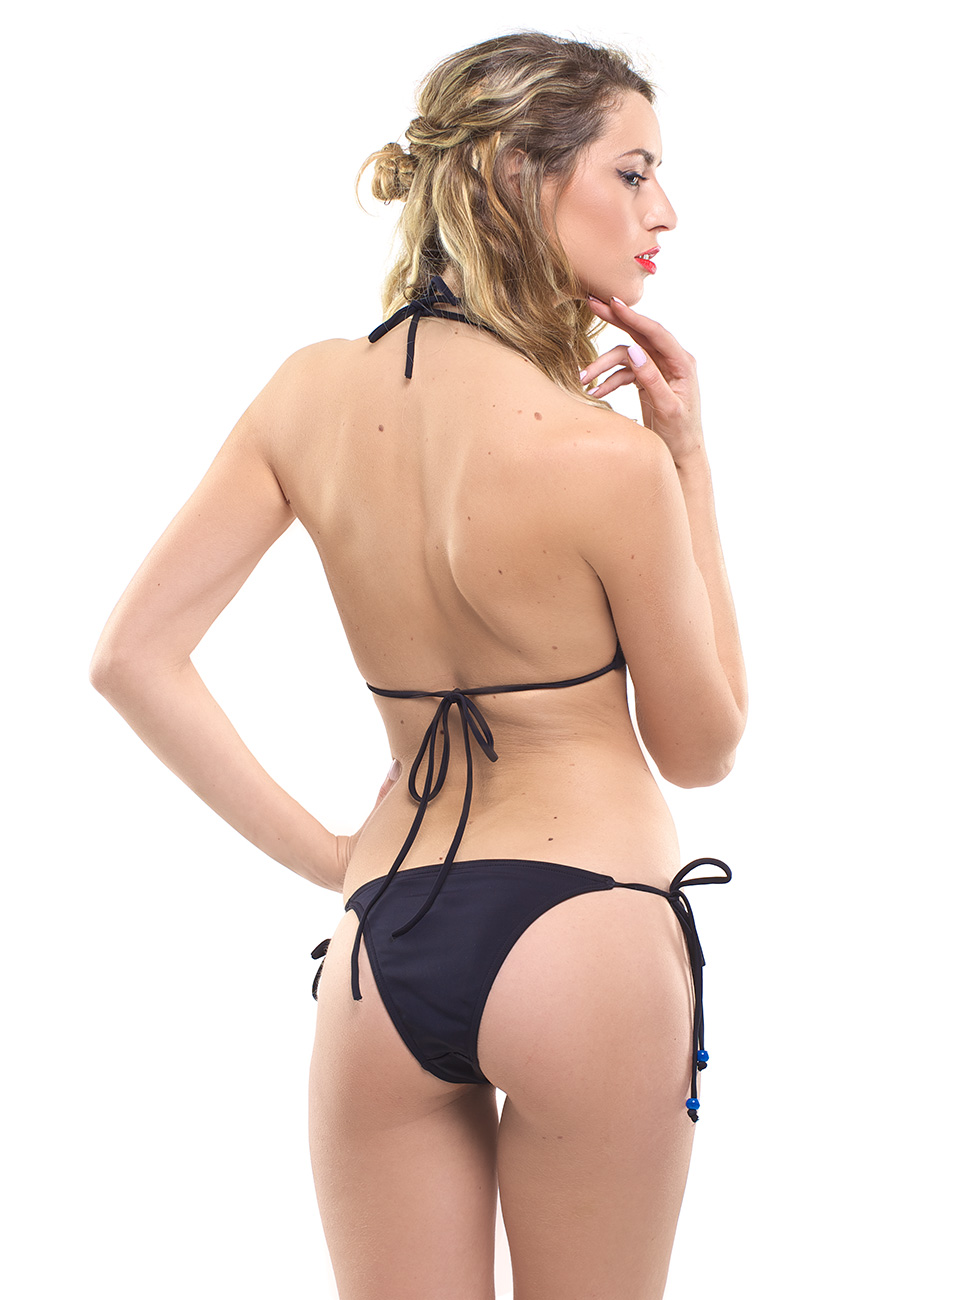 Mix and match your swimwear with our selection of women's bikini al9mg7p1yos.gq as much stomach coverage as you want with high waisted bottoms or more bottom coverage with our full coverage bathing suit bottoms. Swim shorts and swim skirts make for a great bathing suit that looks cute both in and out of the water. To avoid tan lines and bare all, shop our assortment of cheeky bikini bottoms.